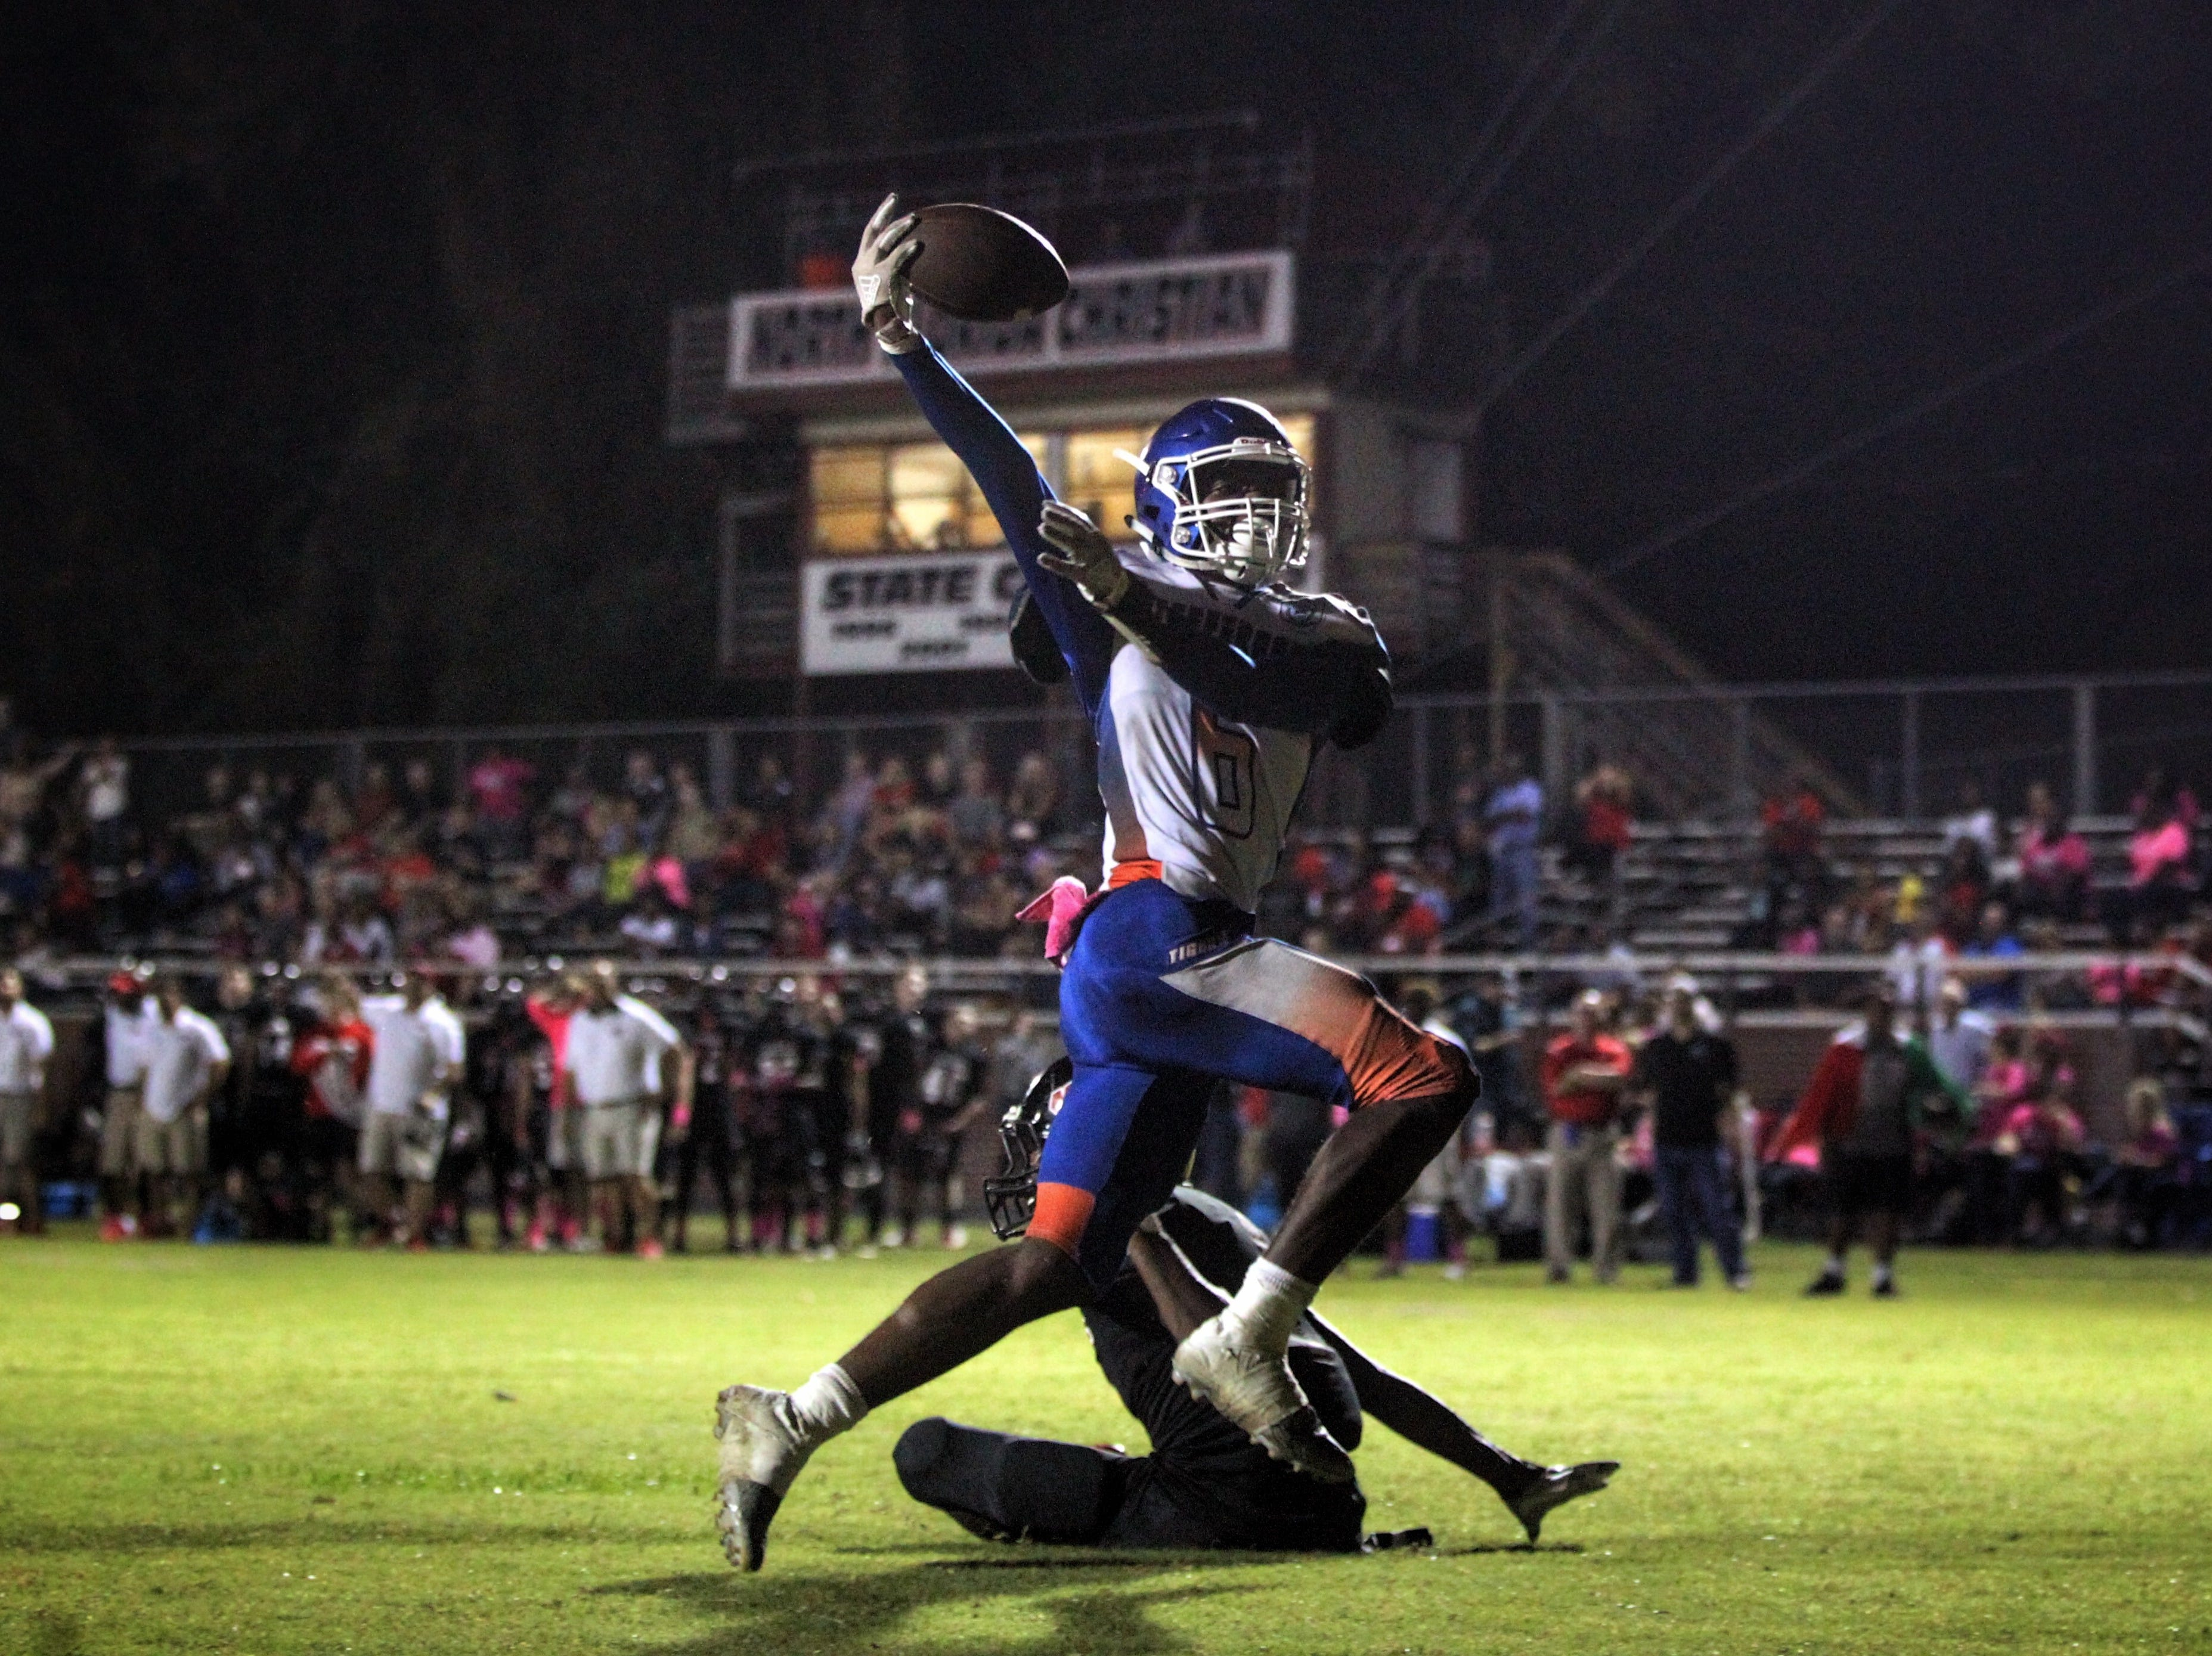 Jefferson County senior Javion Patrick hauls in a touchdown catch during a game at North Florida Christian on Oct. 19, 2018.